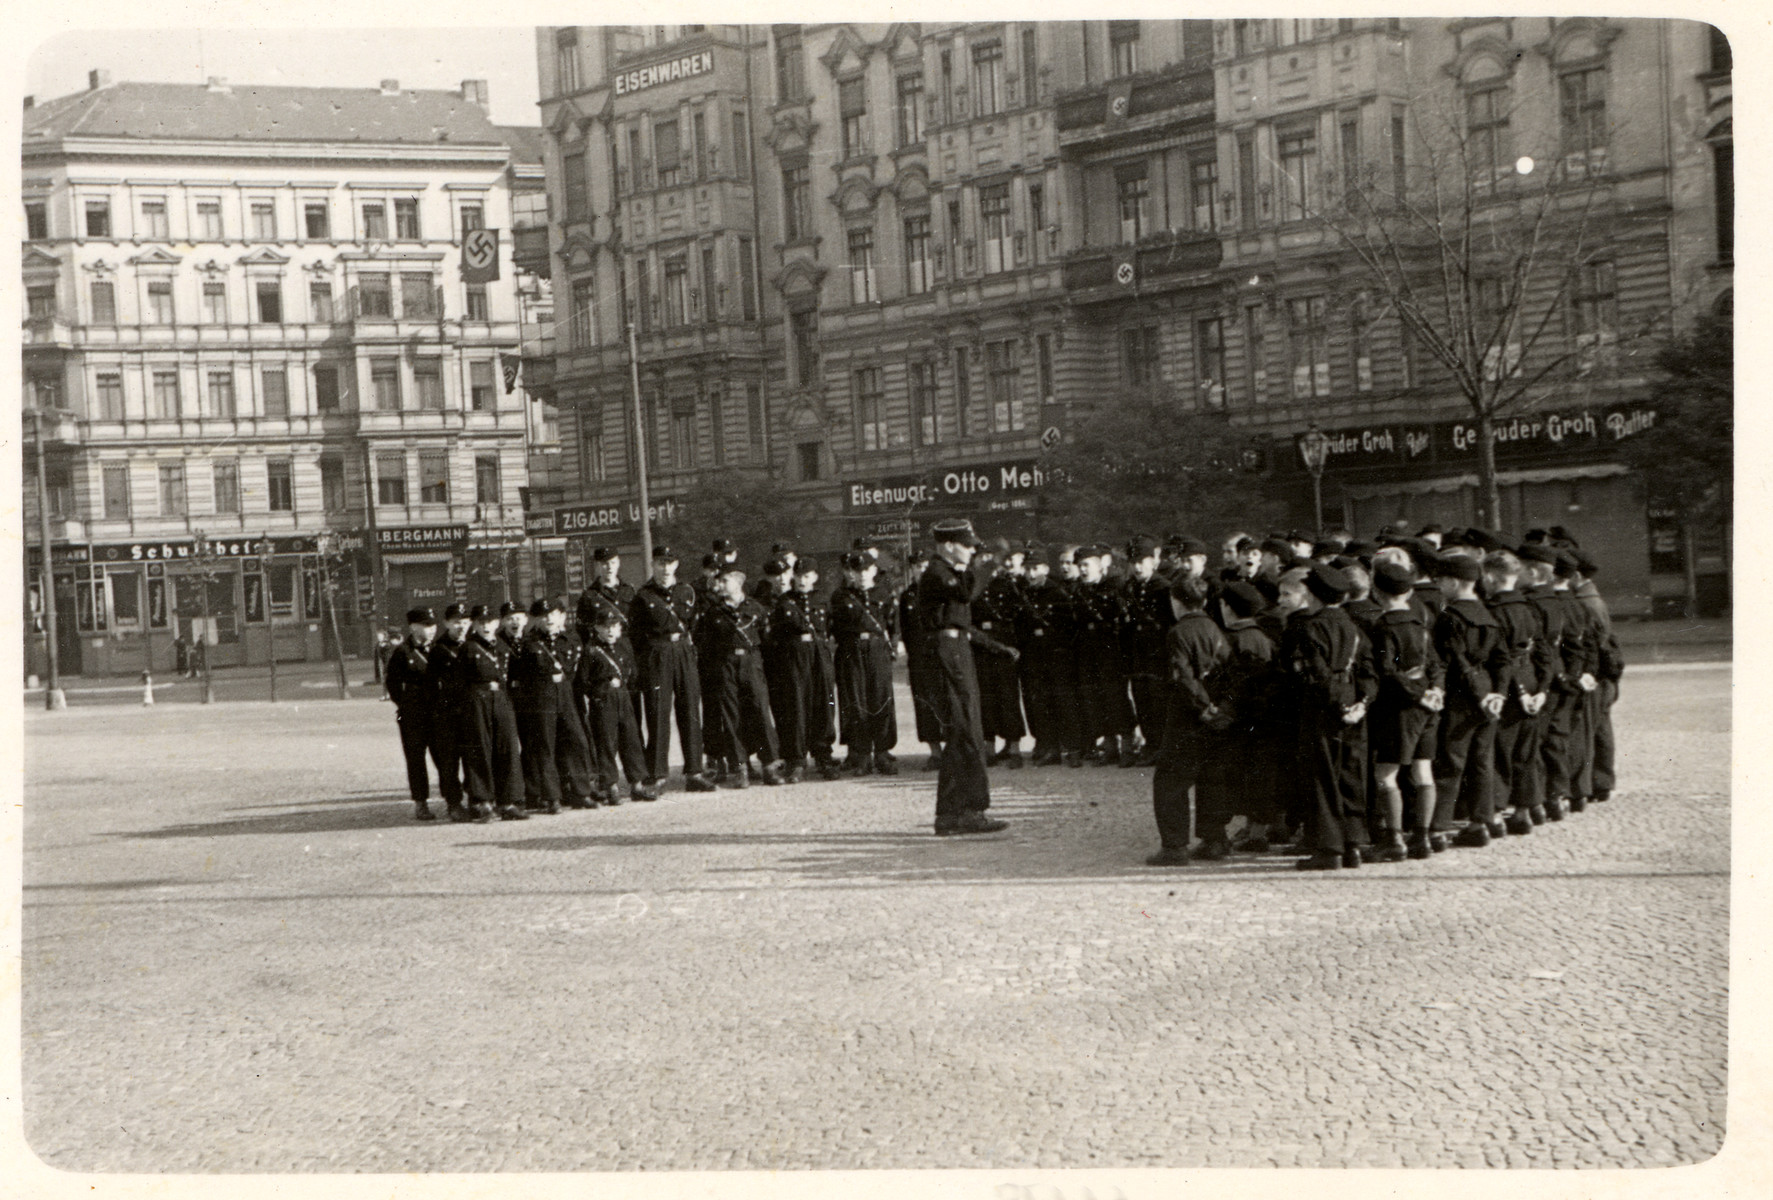 Hitler Youth gather on a street in Germany.    [This image from Berlin was found in the P-20-1939 contact book]